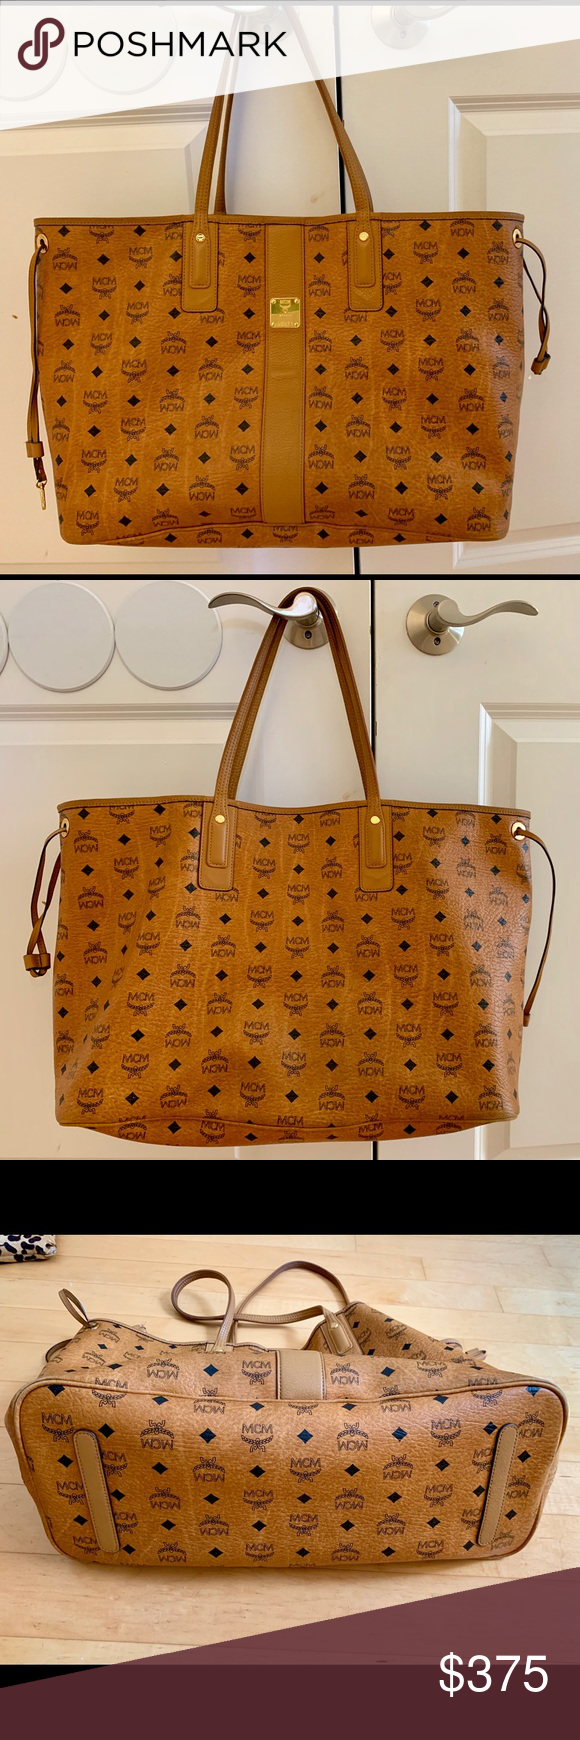 031fa4dc5 MCM Large Liz Tote w/Dust Bag 100% Authentic. Very gently used. No ...